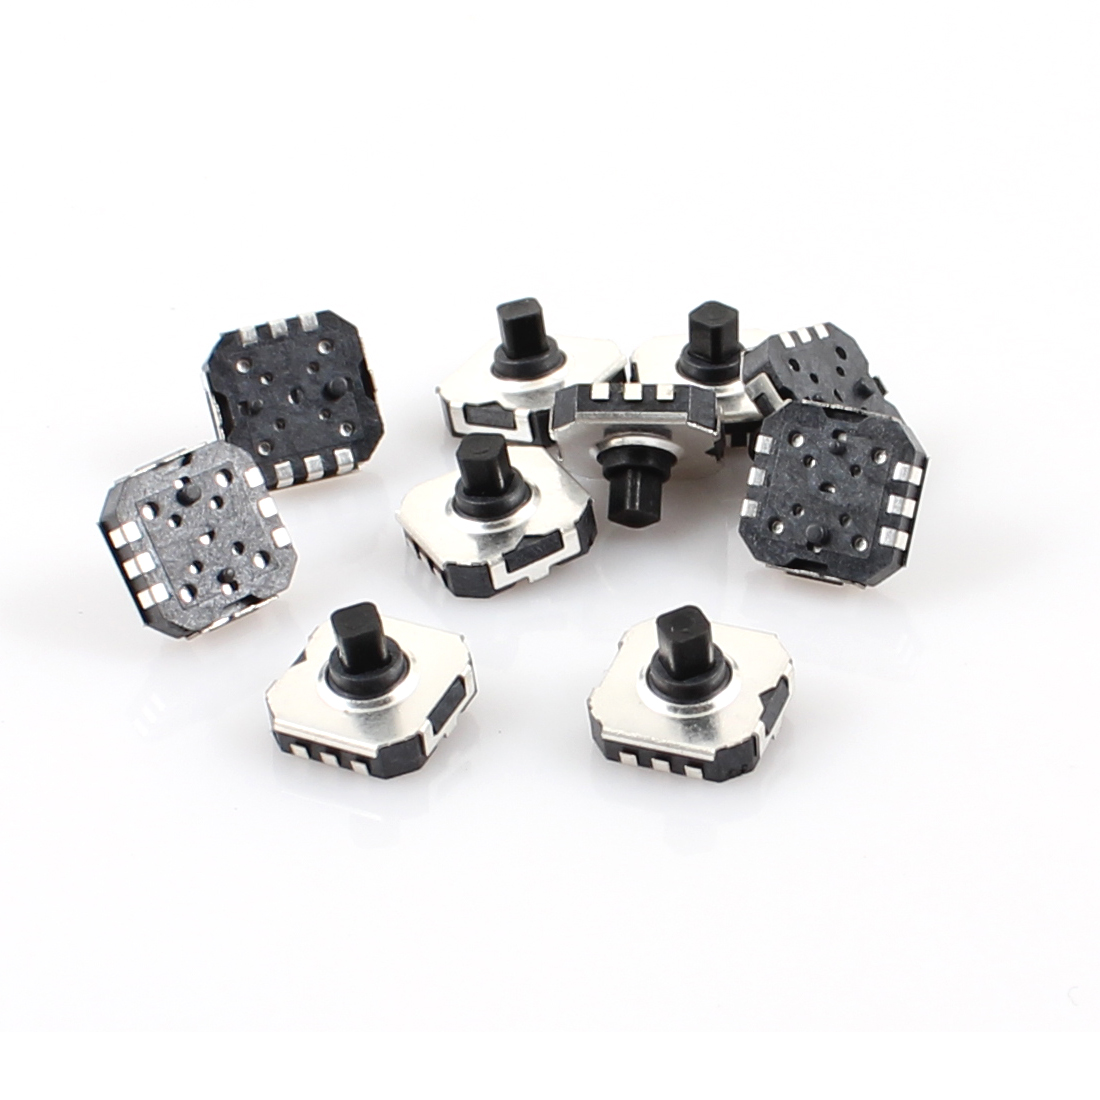 10 Pcs 7mm x 7mm 6 Pin 5 Directions Momentary SMD SMT Tactile Tact Switch